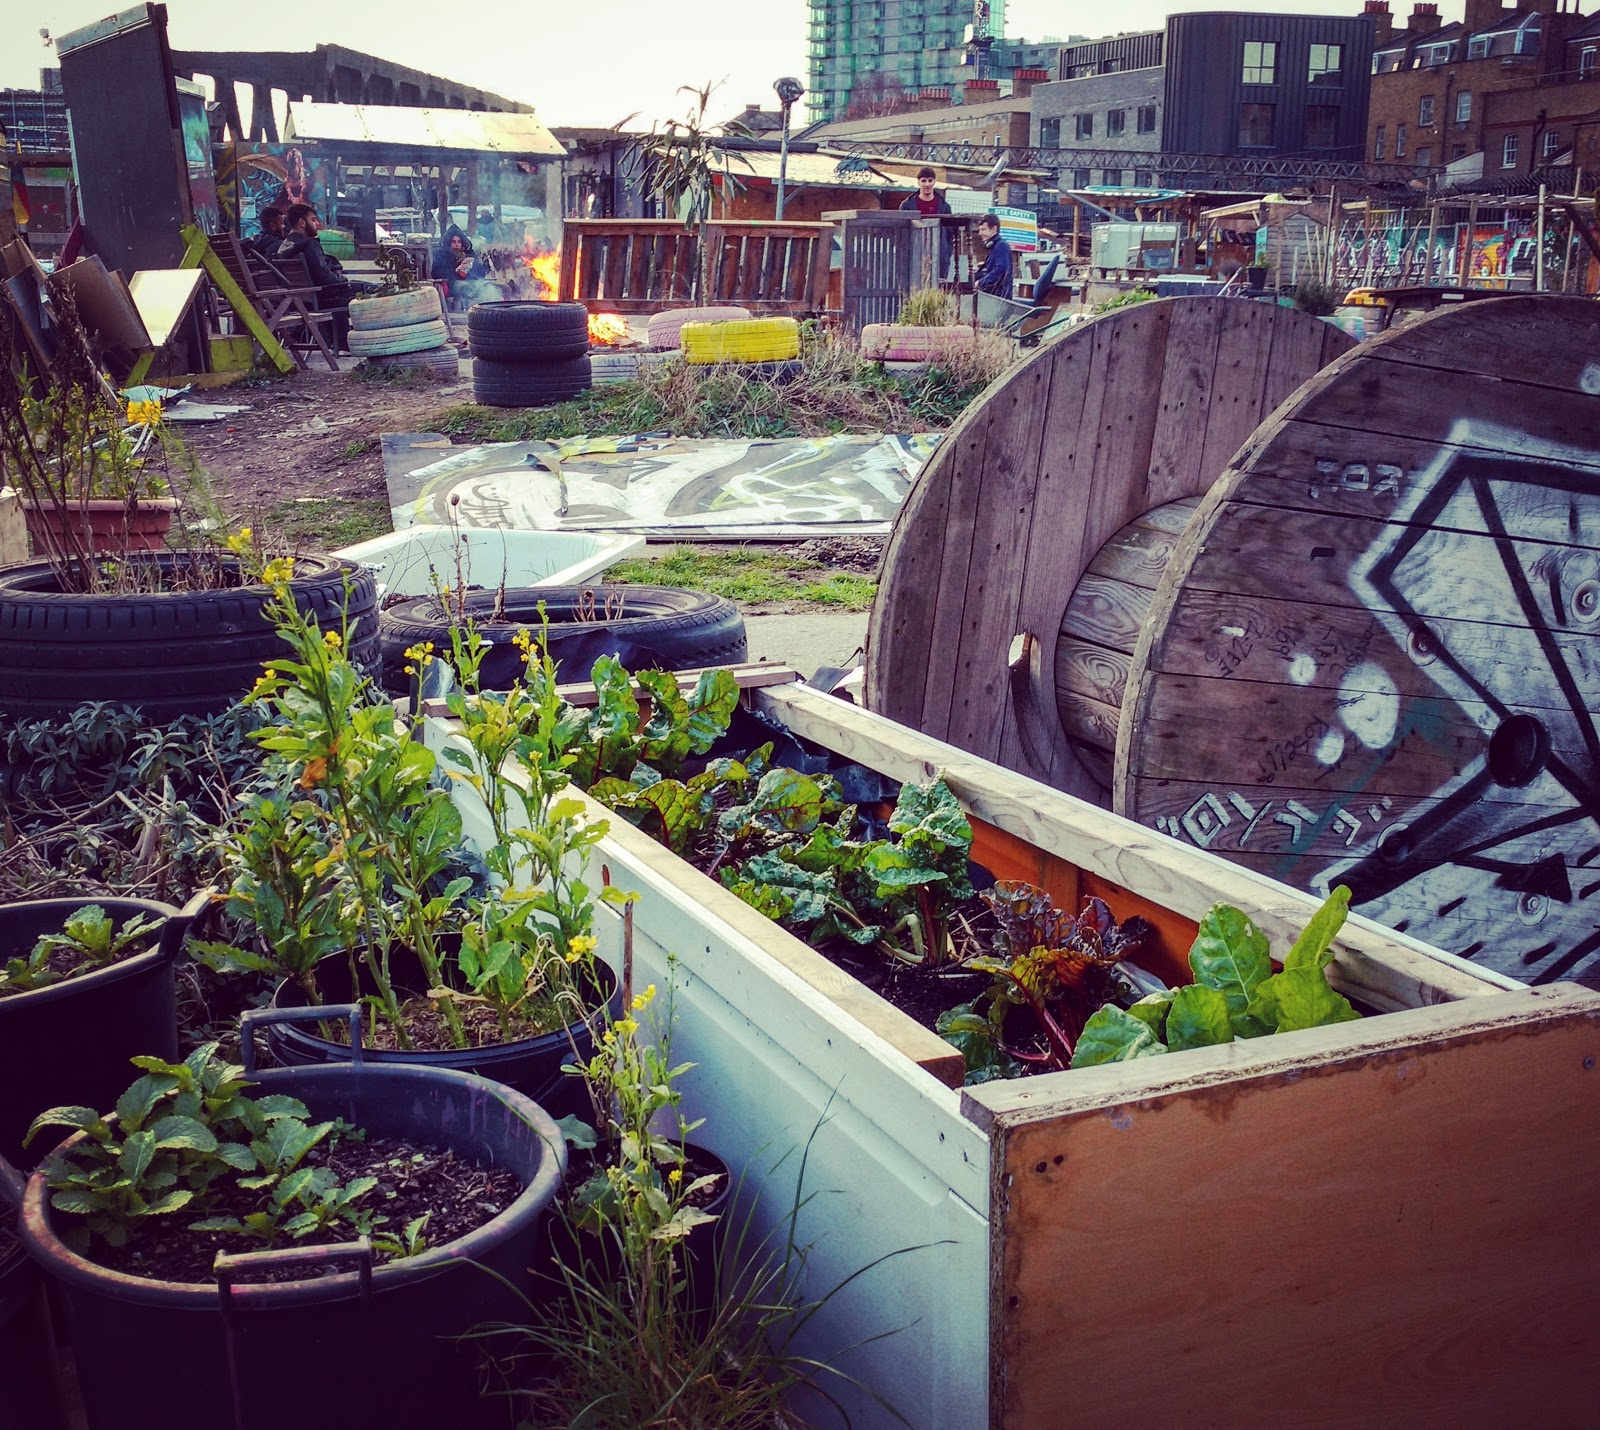 On The Road with the ROVING CAFE & the Nomadic Community Gardens